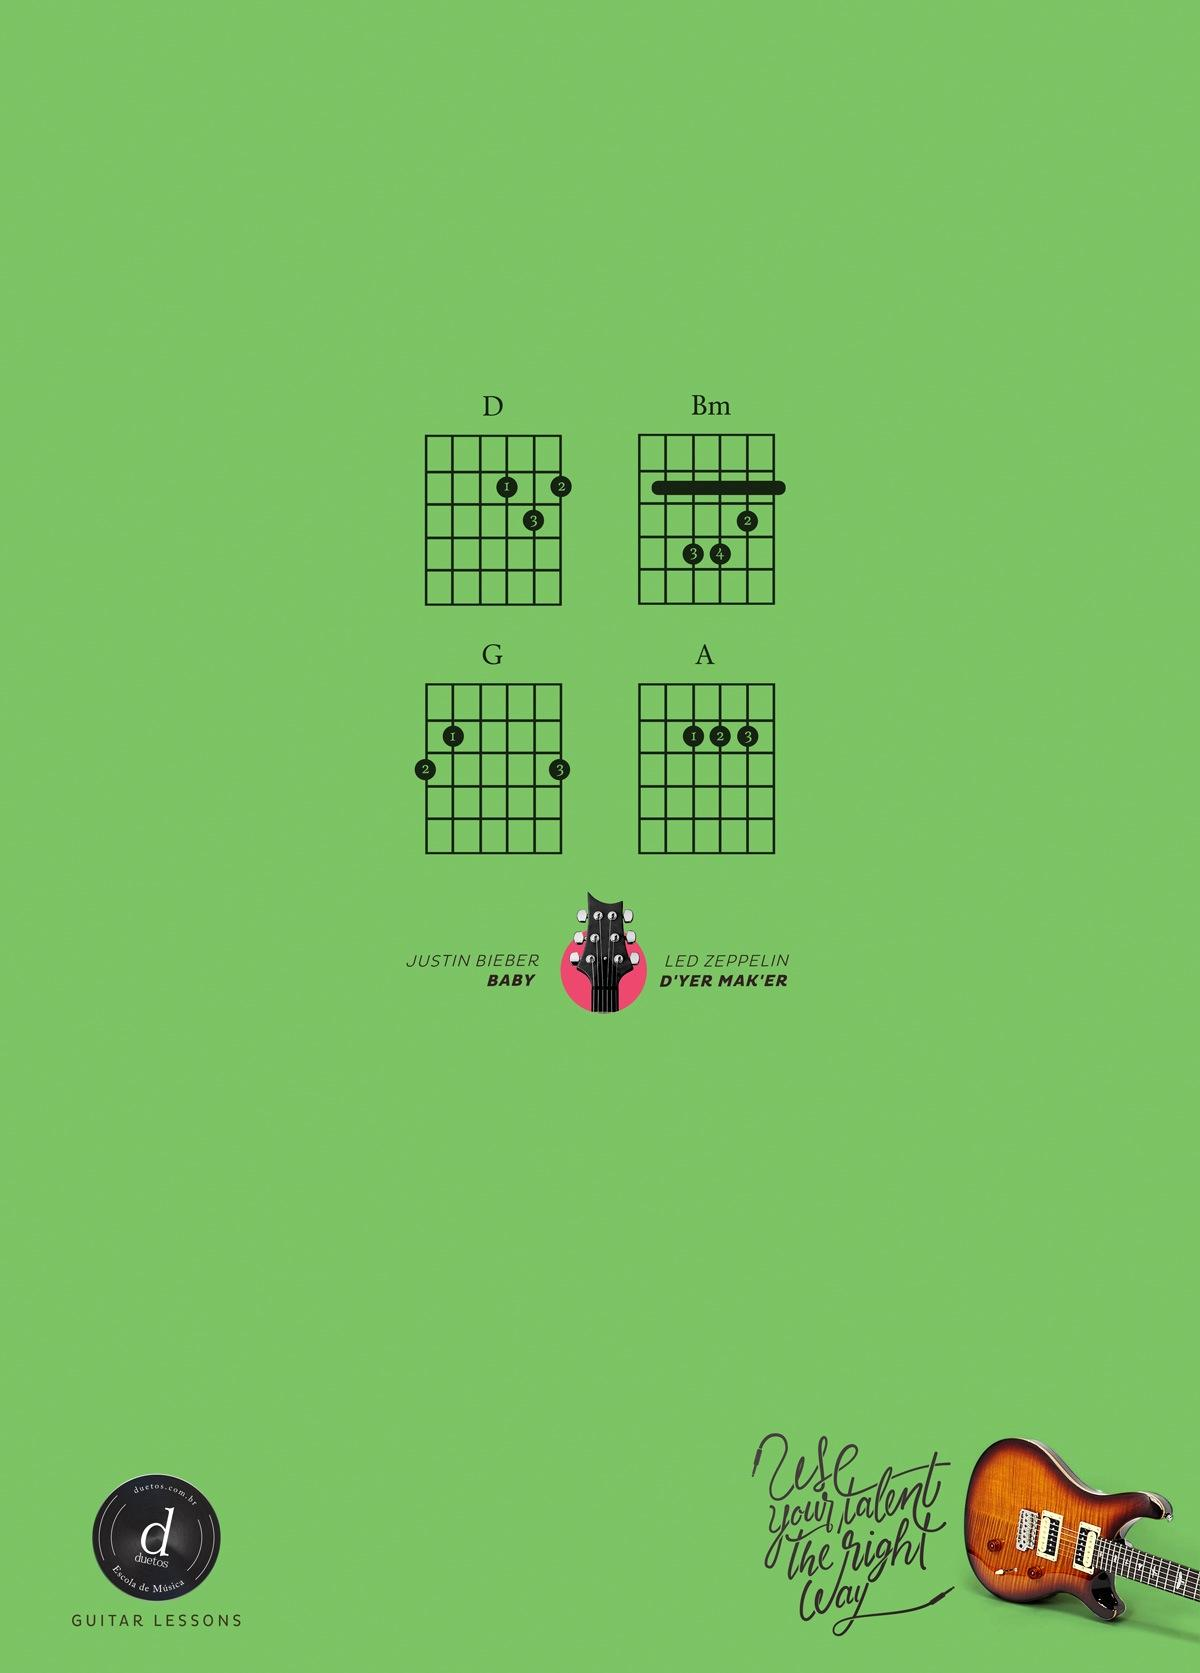 Duetos Print Ad -  Use your talent the right way, 2